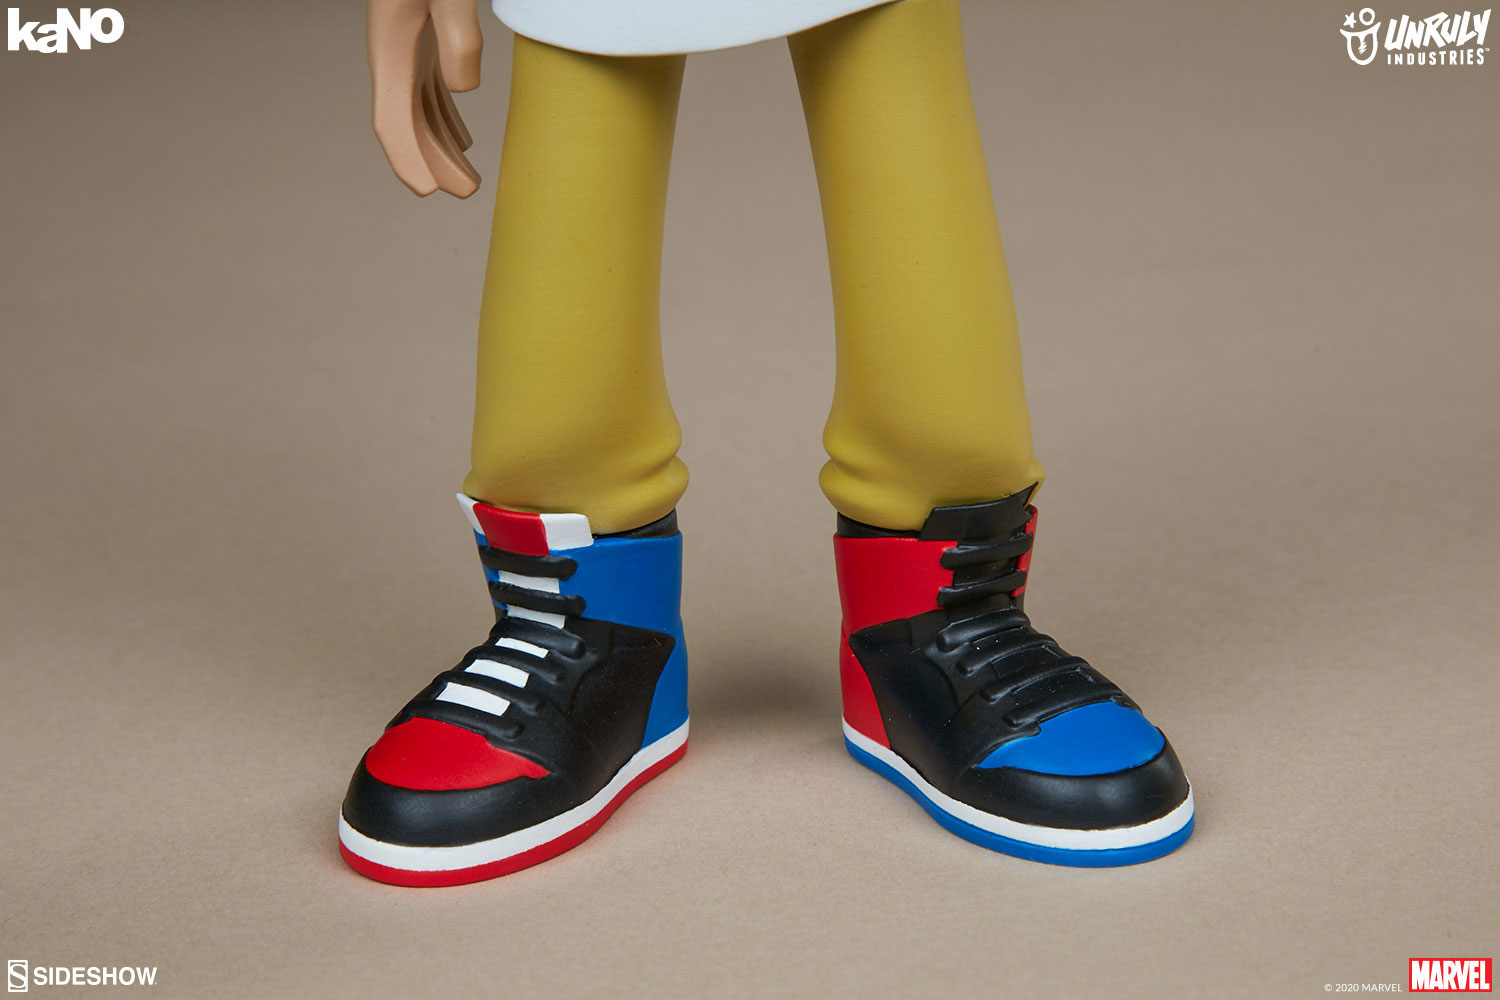 unruly-industries-kano-marvel-spider-man-toy-figure-in-sneakers-4